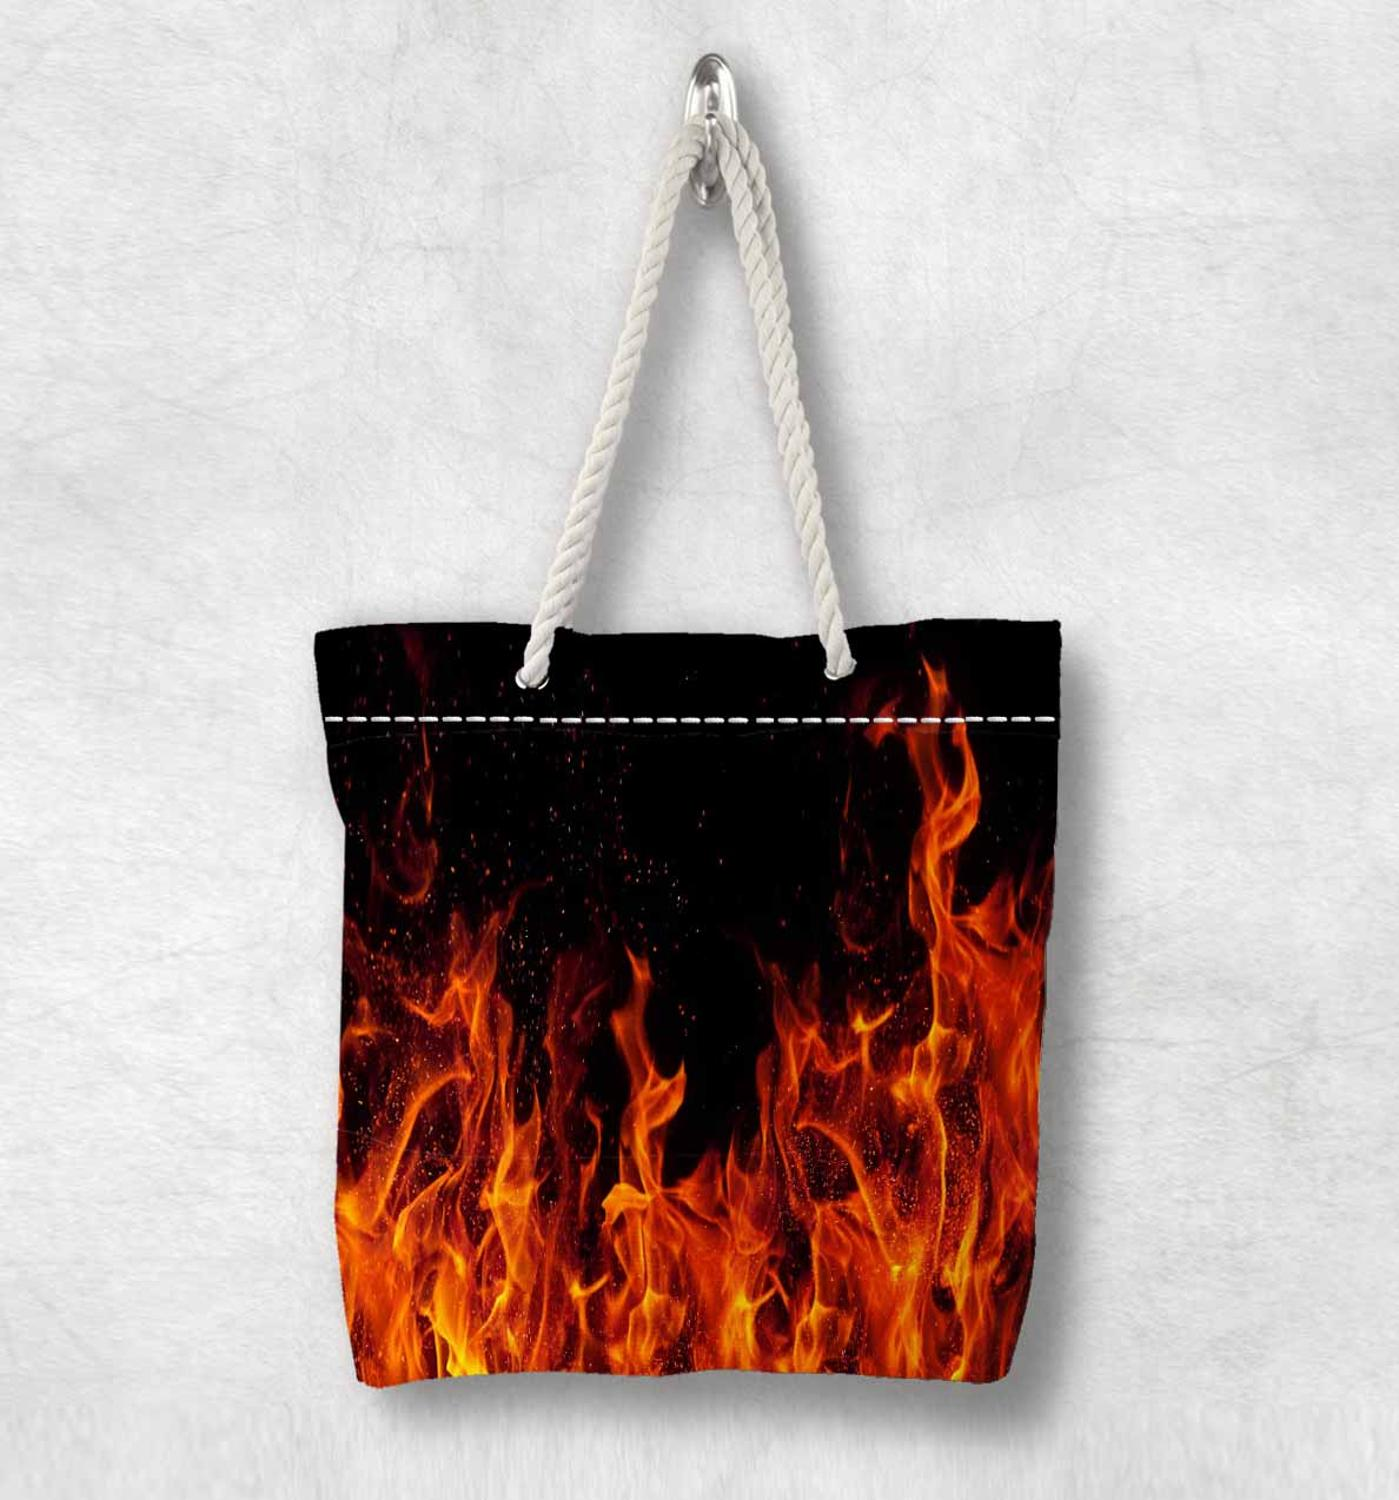 Else Black Floor Red Orange Fire Flames New Fashion White Rope Handle Canvas Bag Cotton Canvas Zippered Tote Bag Shoulder Bag